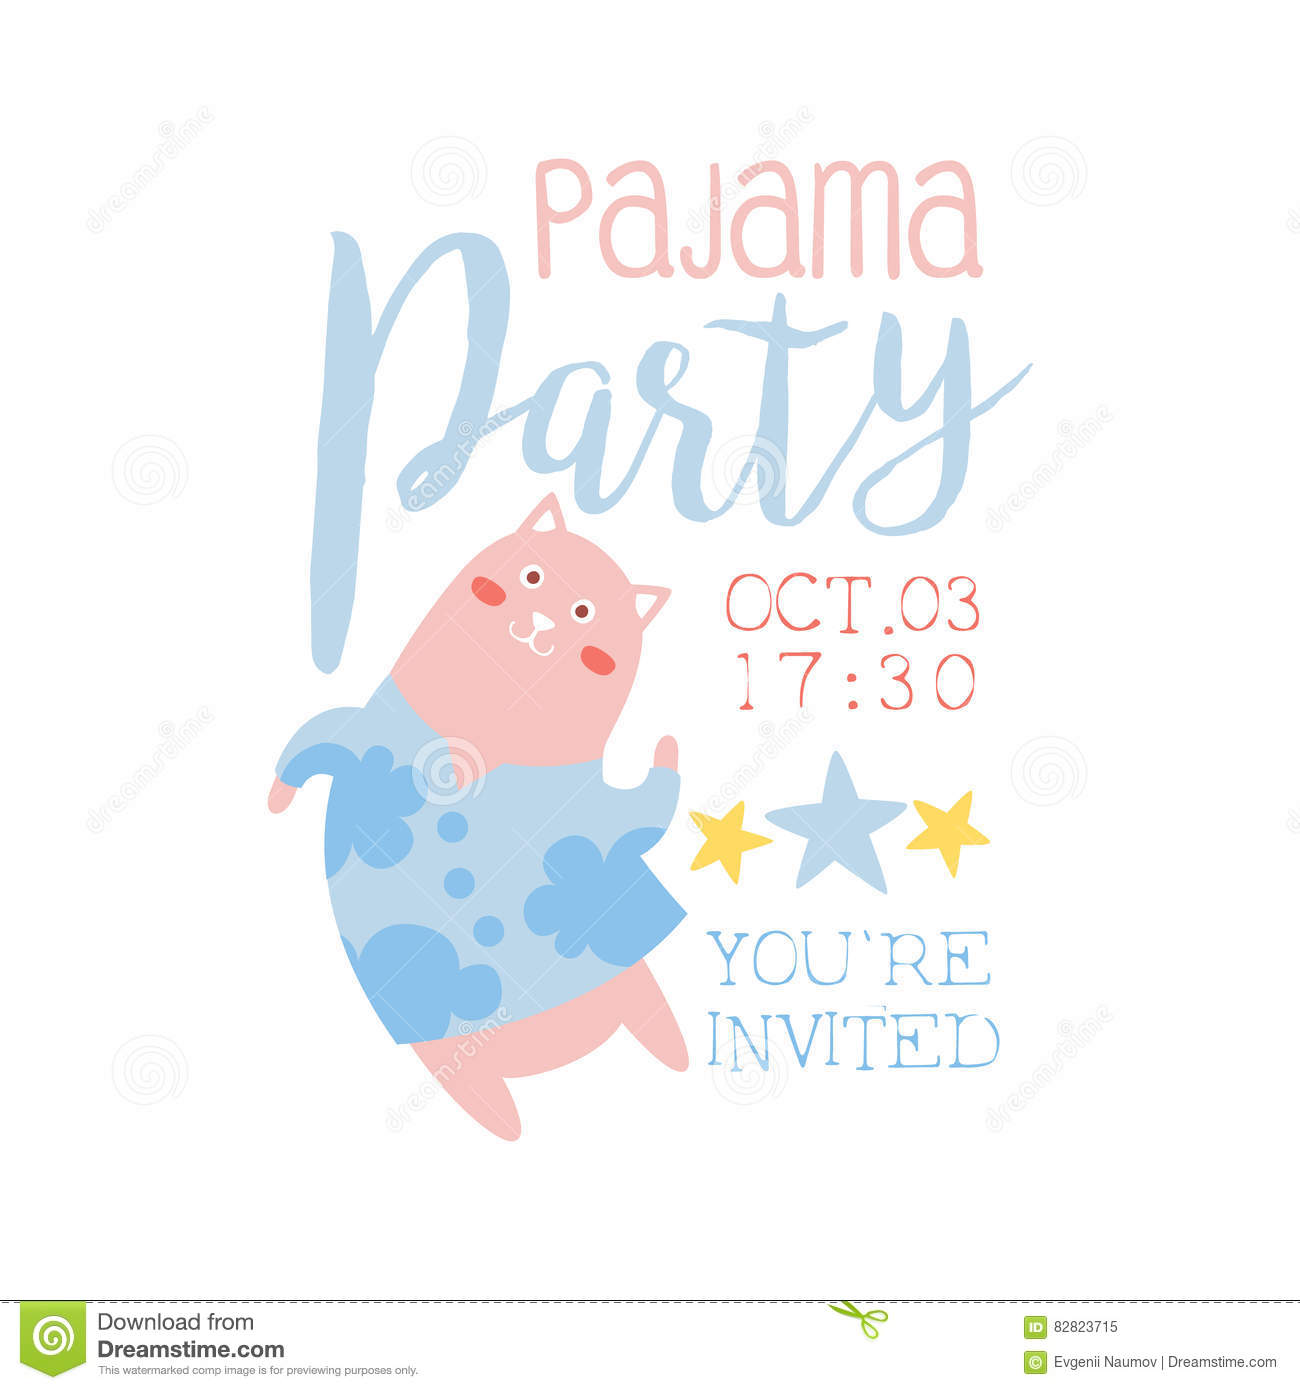 girly pajama party invitation card template with cat inviting kids